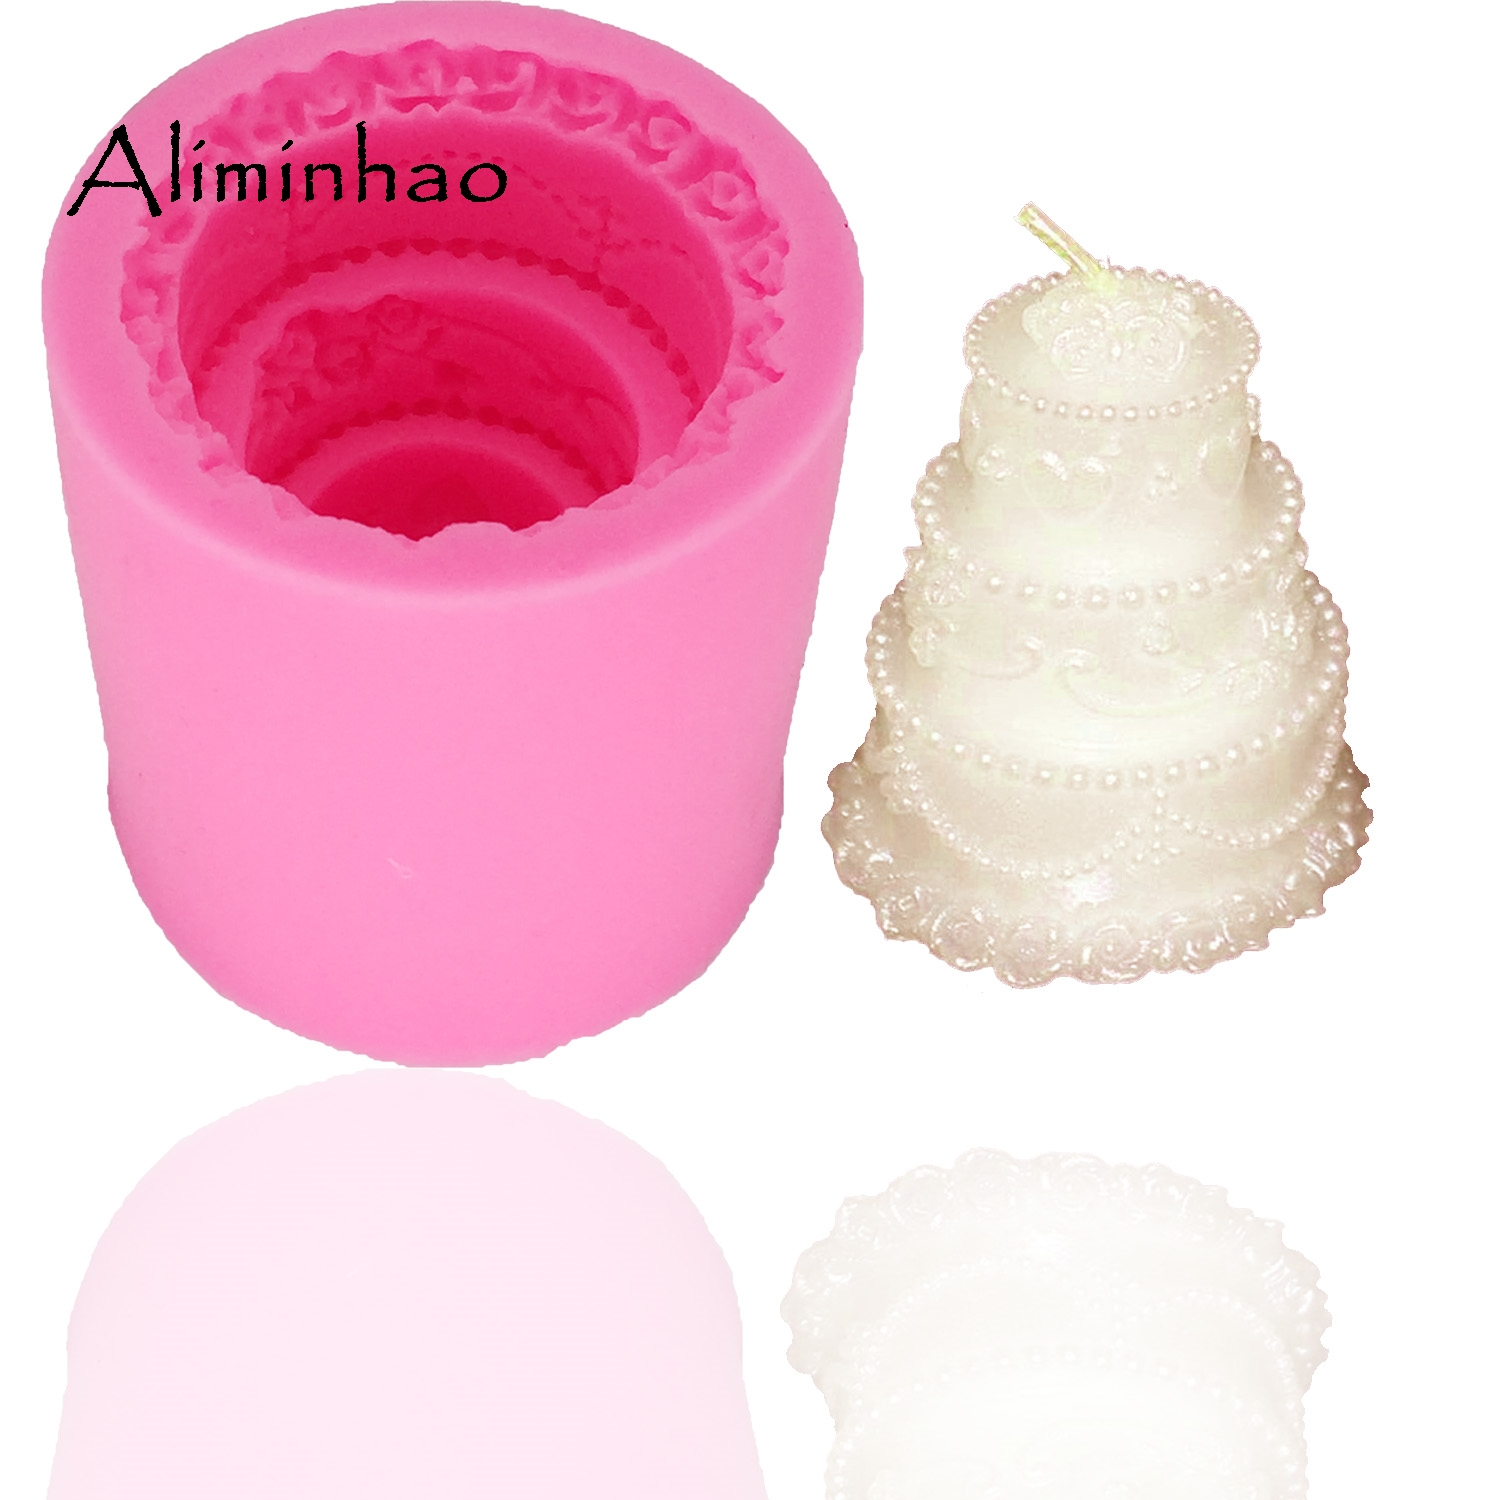 B0316 3-layer <font><b>cake</b></font> shape candle mould DIY chocolate Sugar Craft Silicone mould <font><b>fondant</b></font> <font><b>cake</b></font> <font><b>decorating</b></font> <font><b>tools</b></font> <font><b>accessory</b></font> kitche image